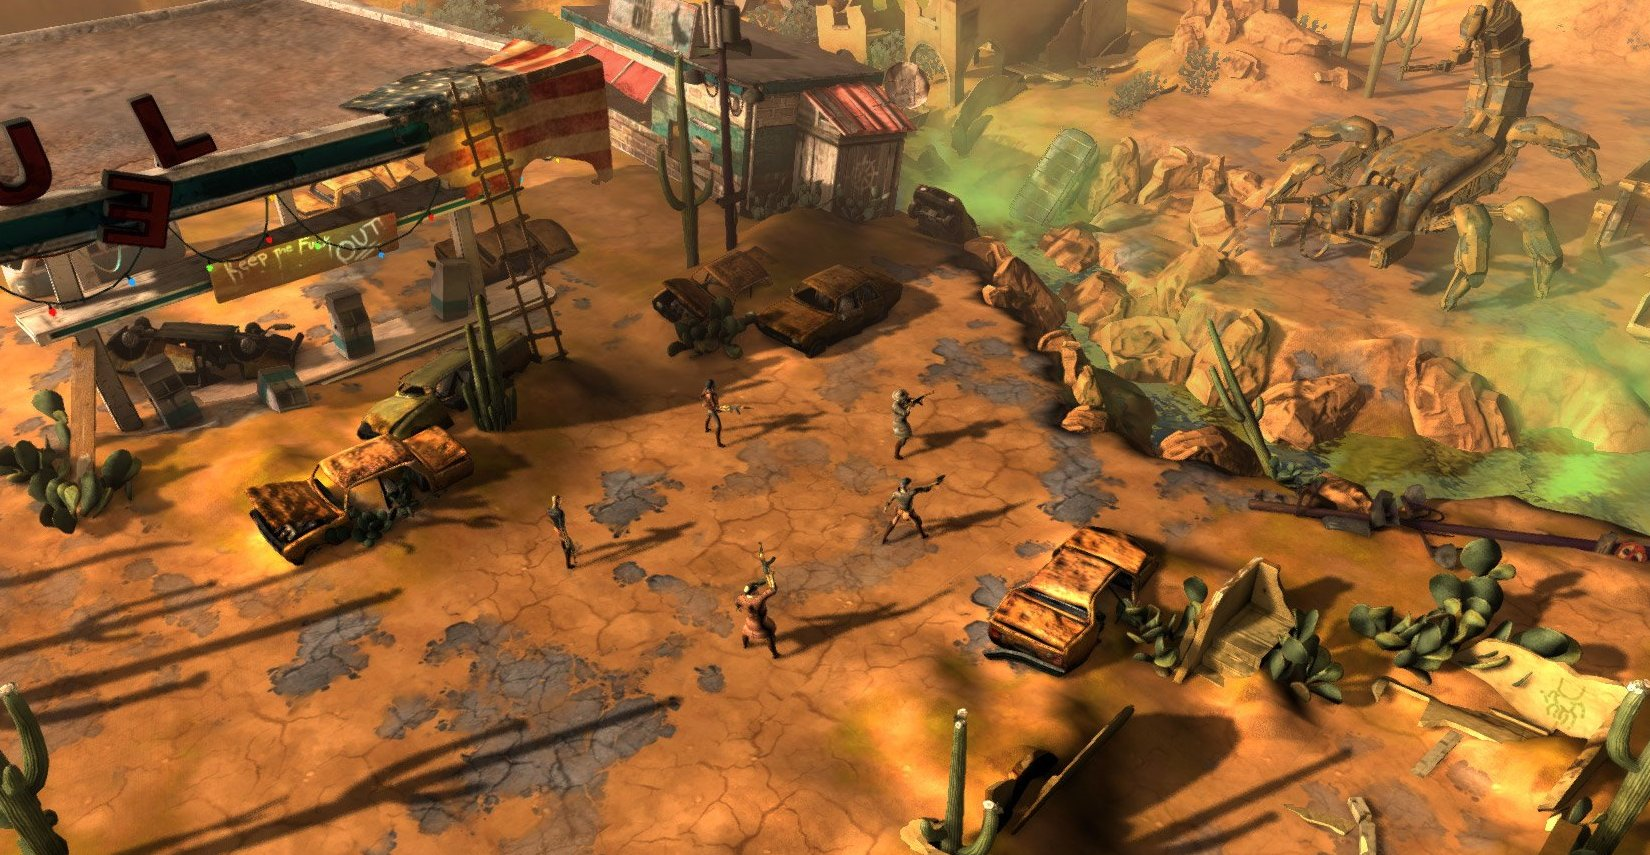 Wasteland 2 director's cut pc download, install and play for.